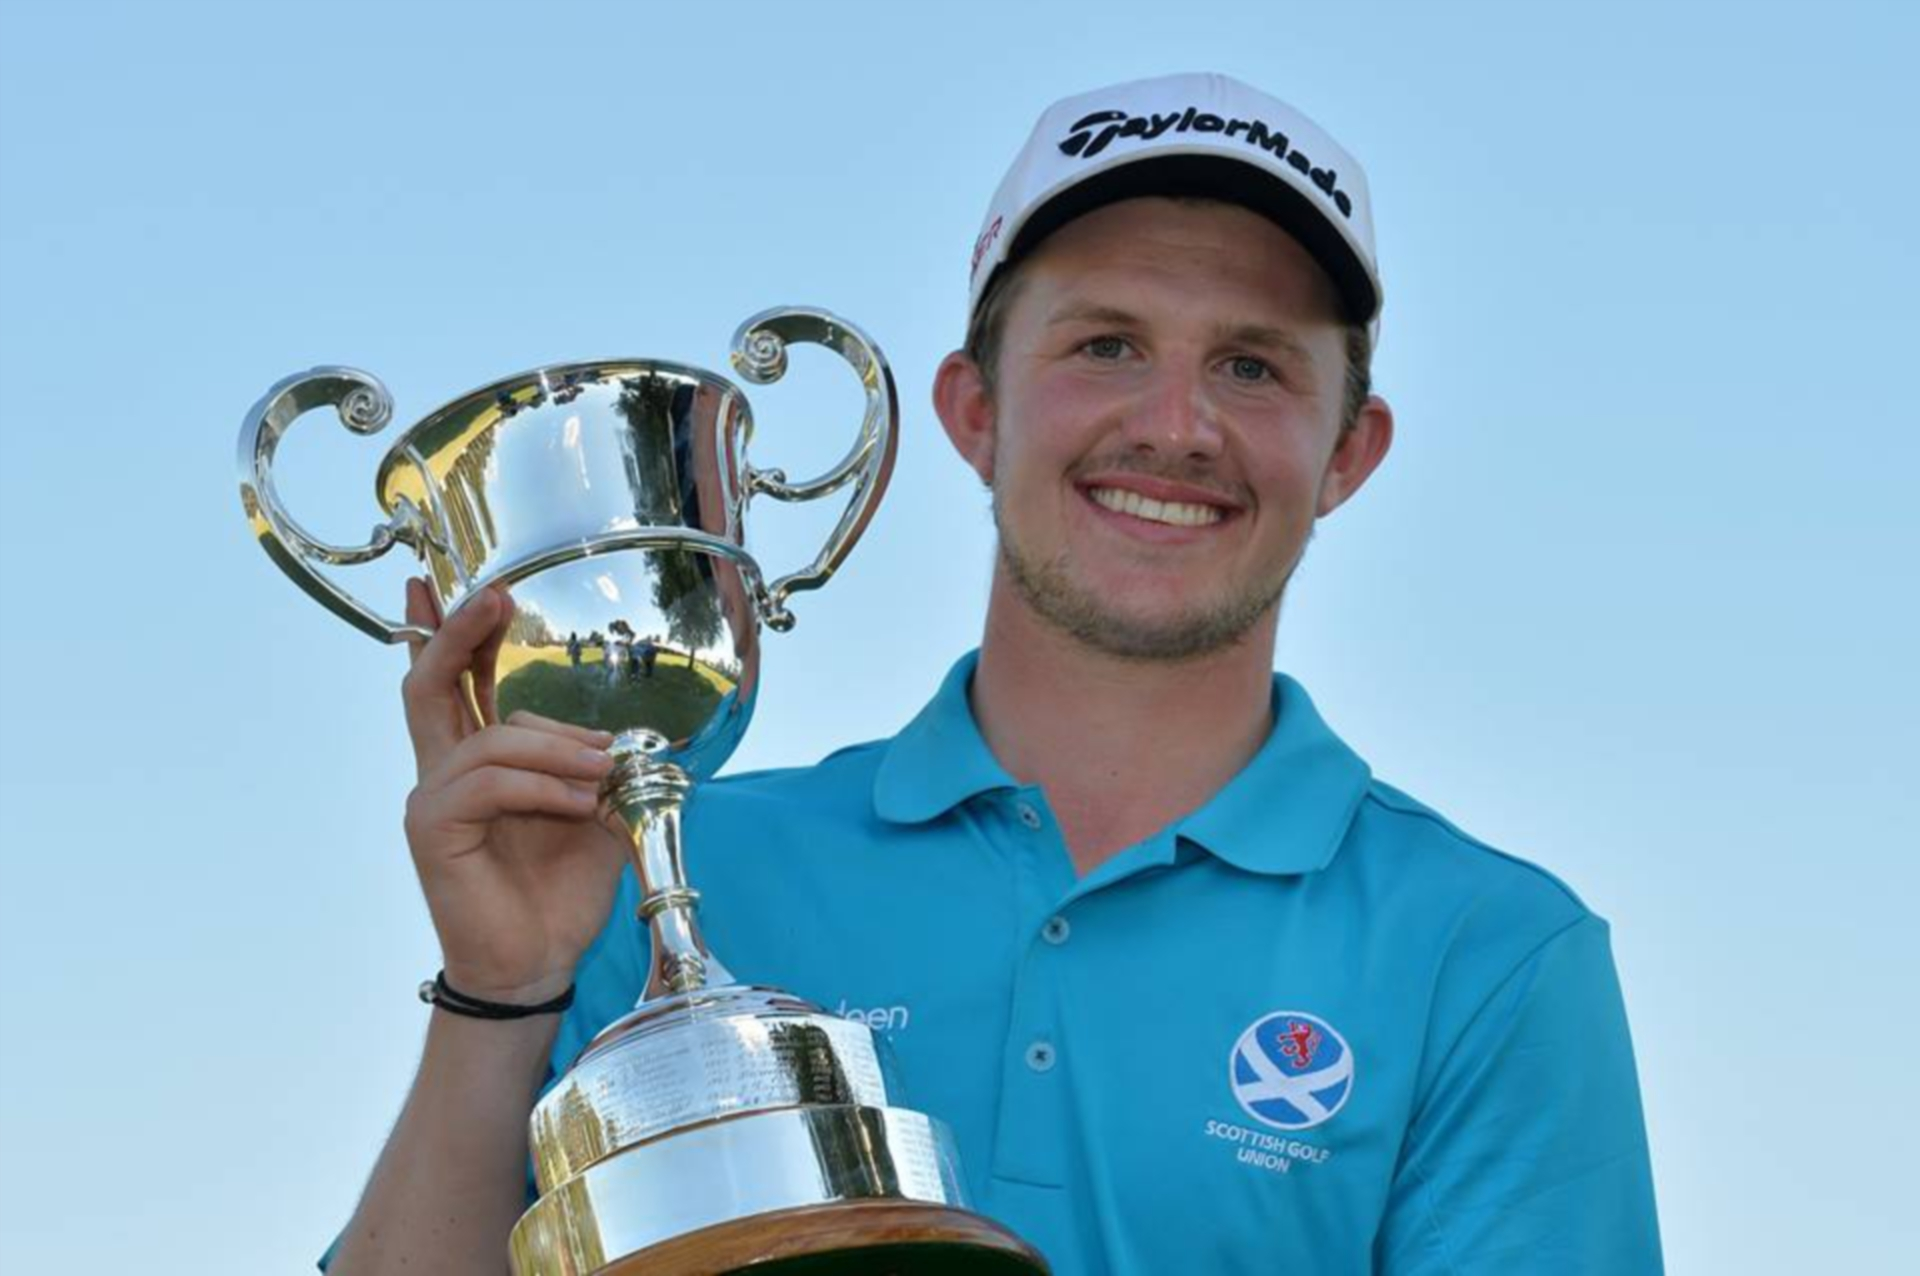 Australian Amateur champion Connor Syme leads the World Amateur Team Championship Individual standings after the first round.